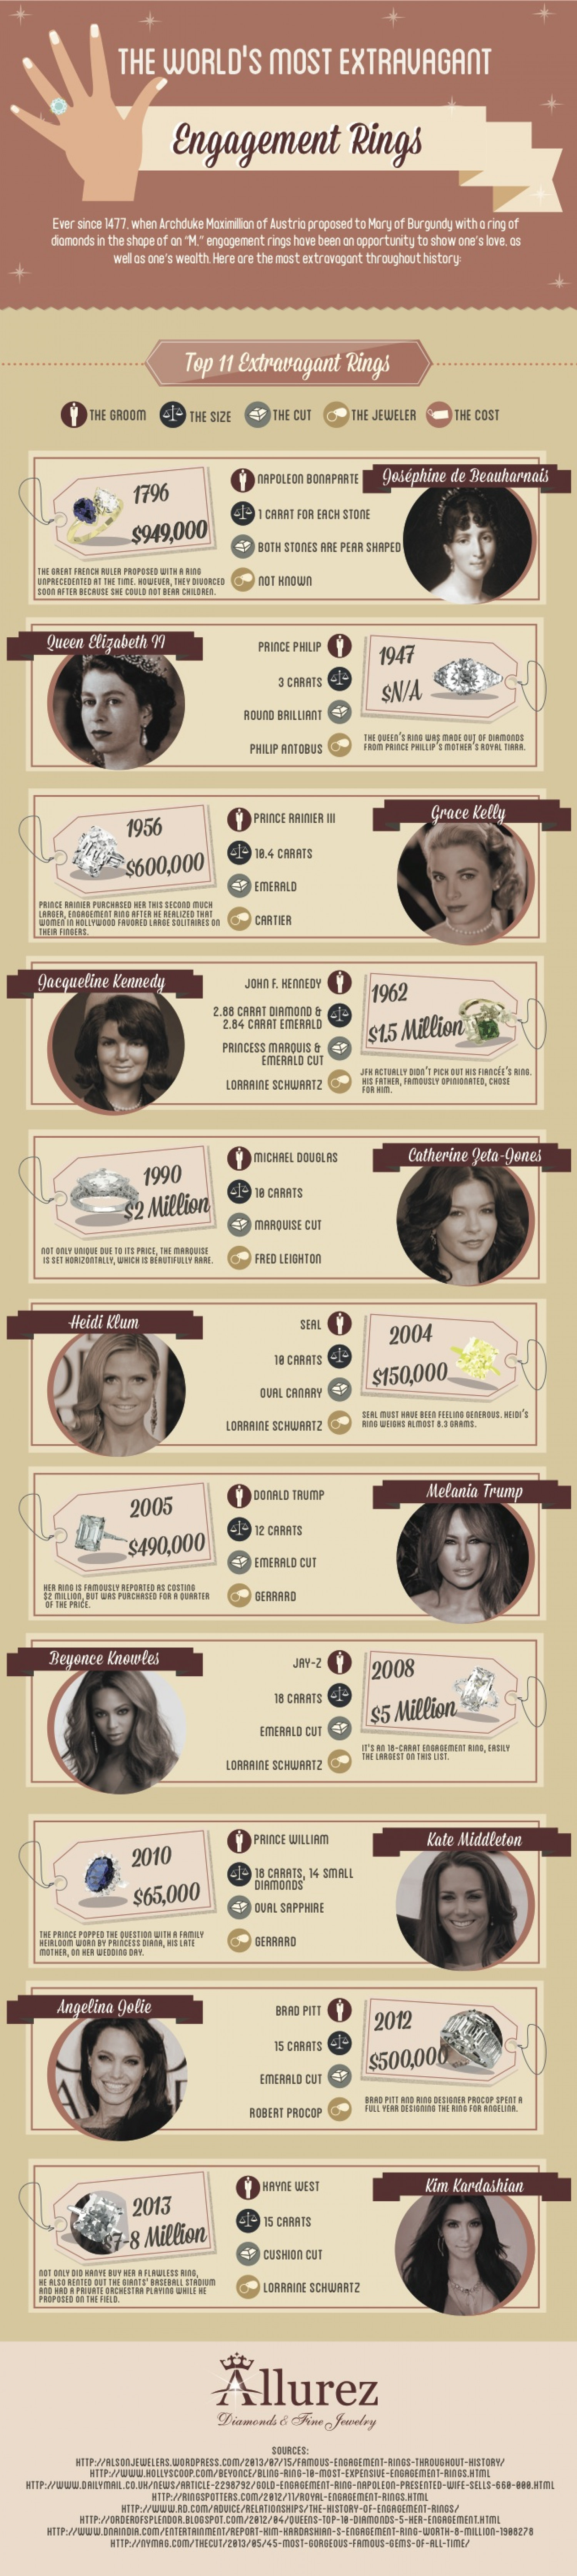 The World's Most Extravagant Engagement Rings Infographic